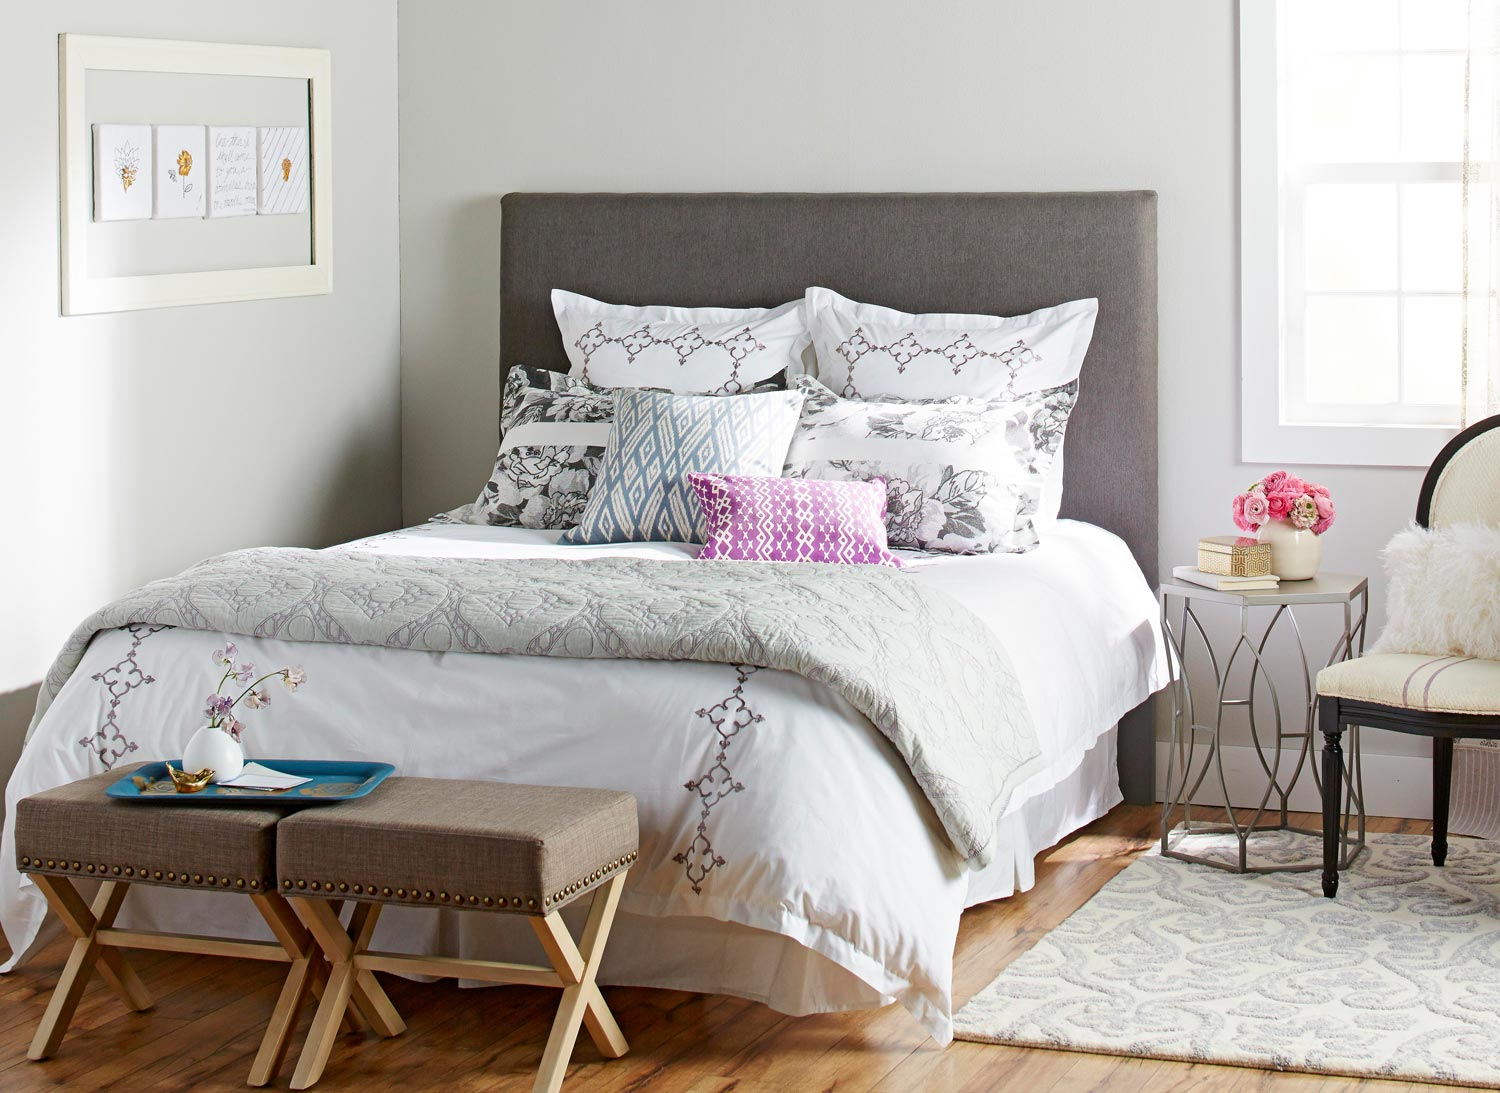 Diy Upholstered Headboards Midwest Living